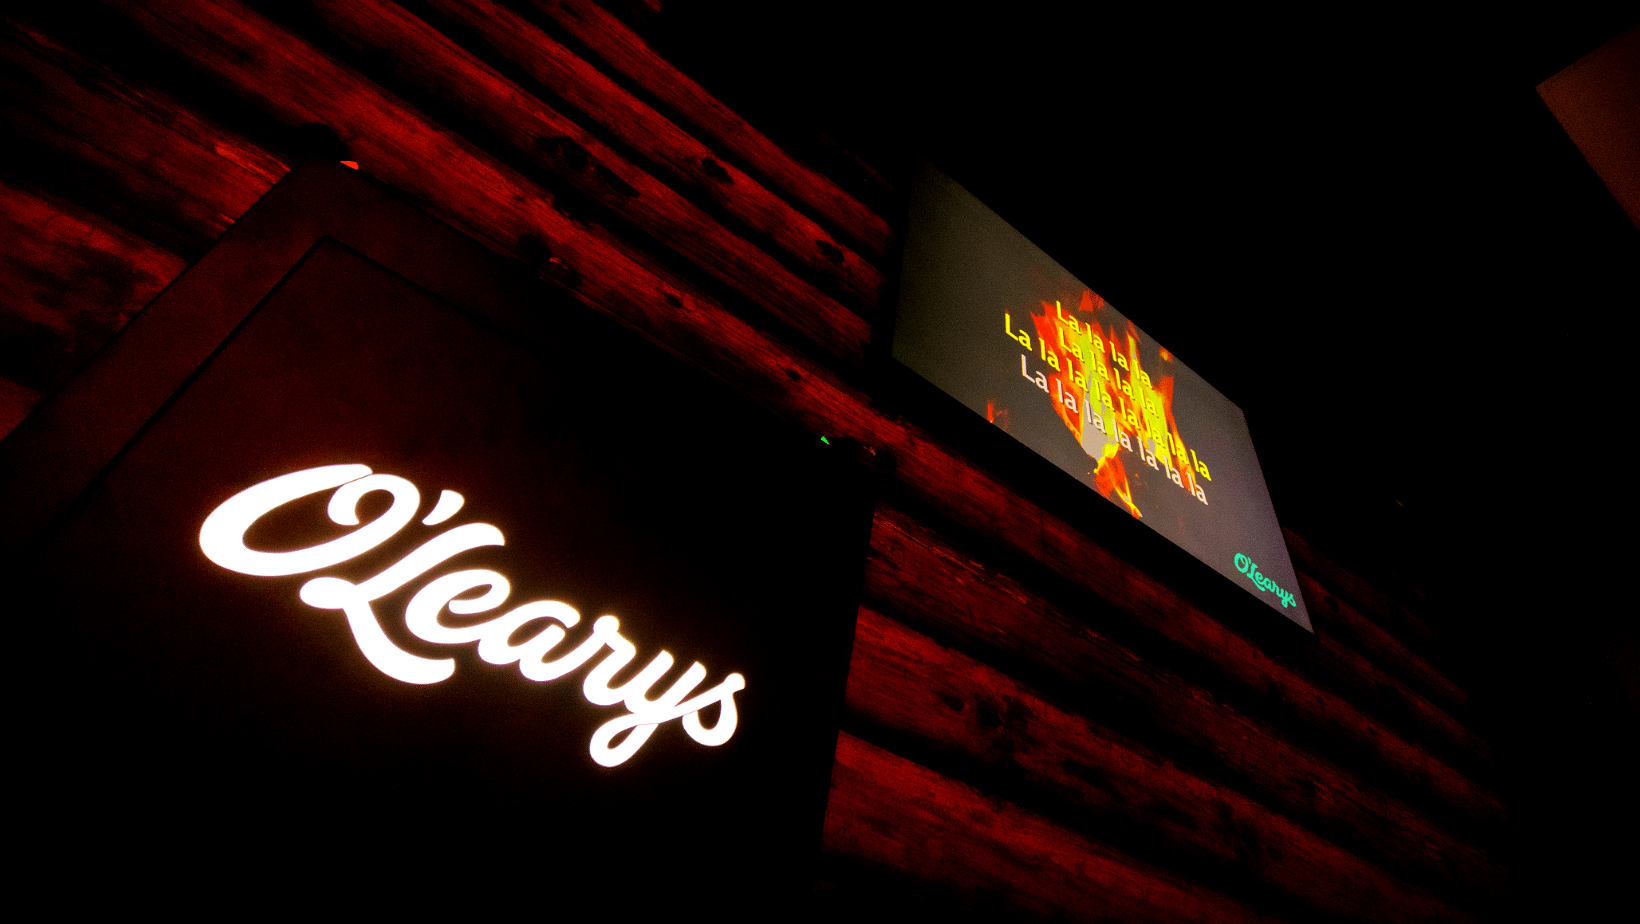 O'Learys opens five karaoke rooms in The Mall of the Netherlands